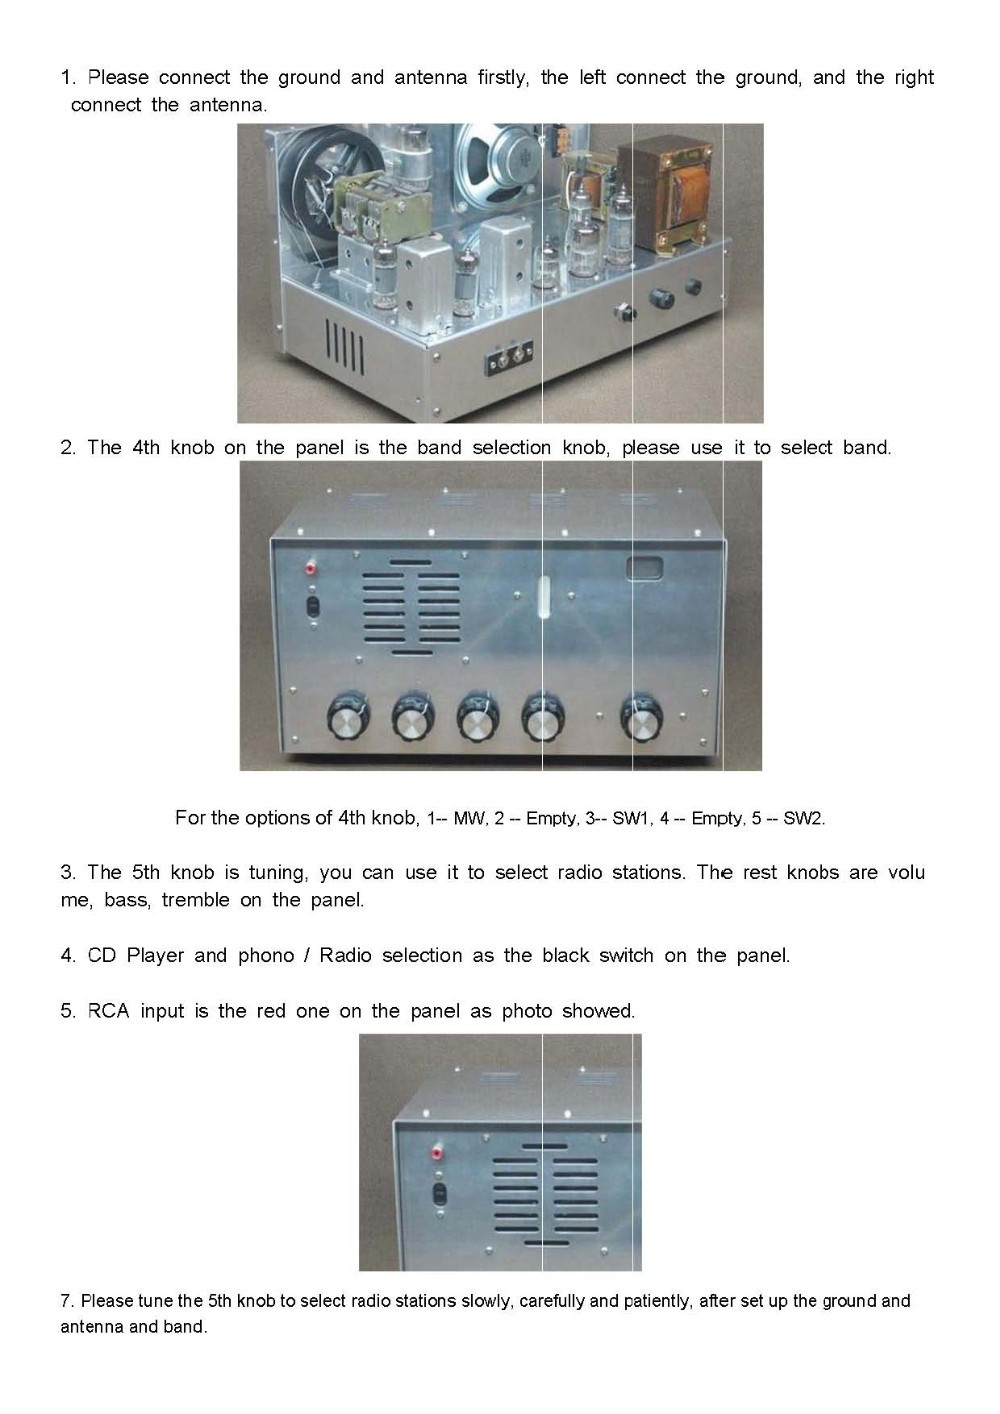 Simple instructions for use the radio